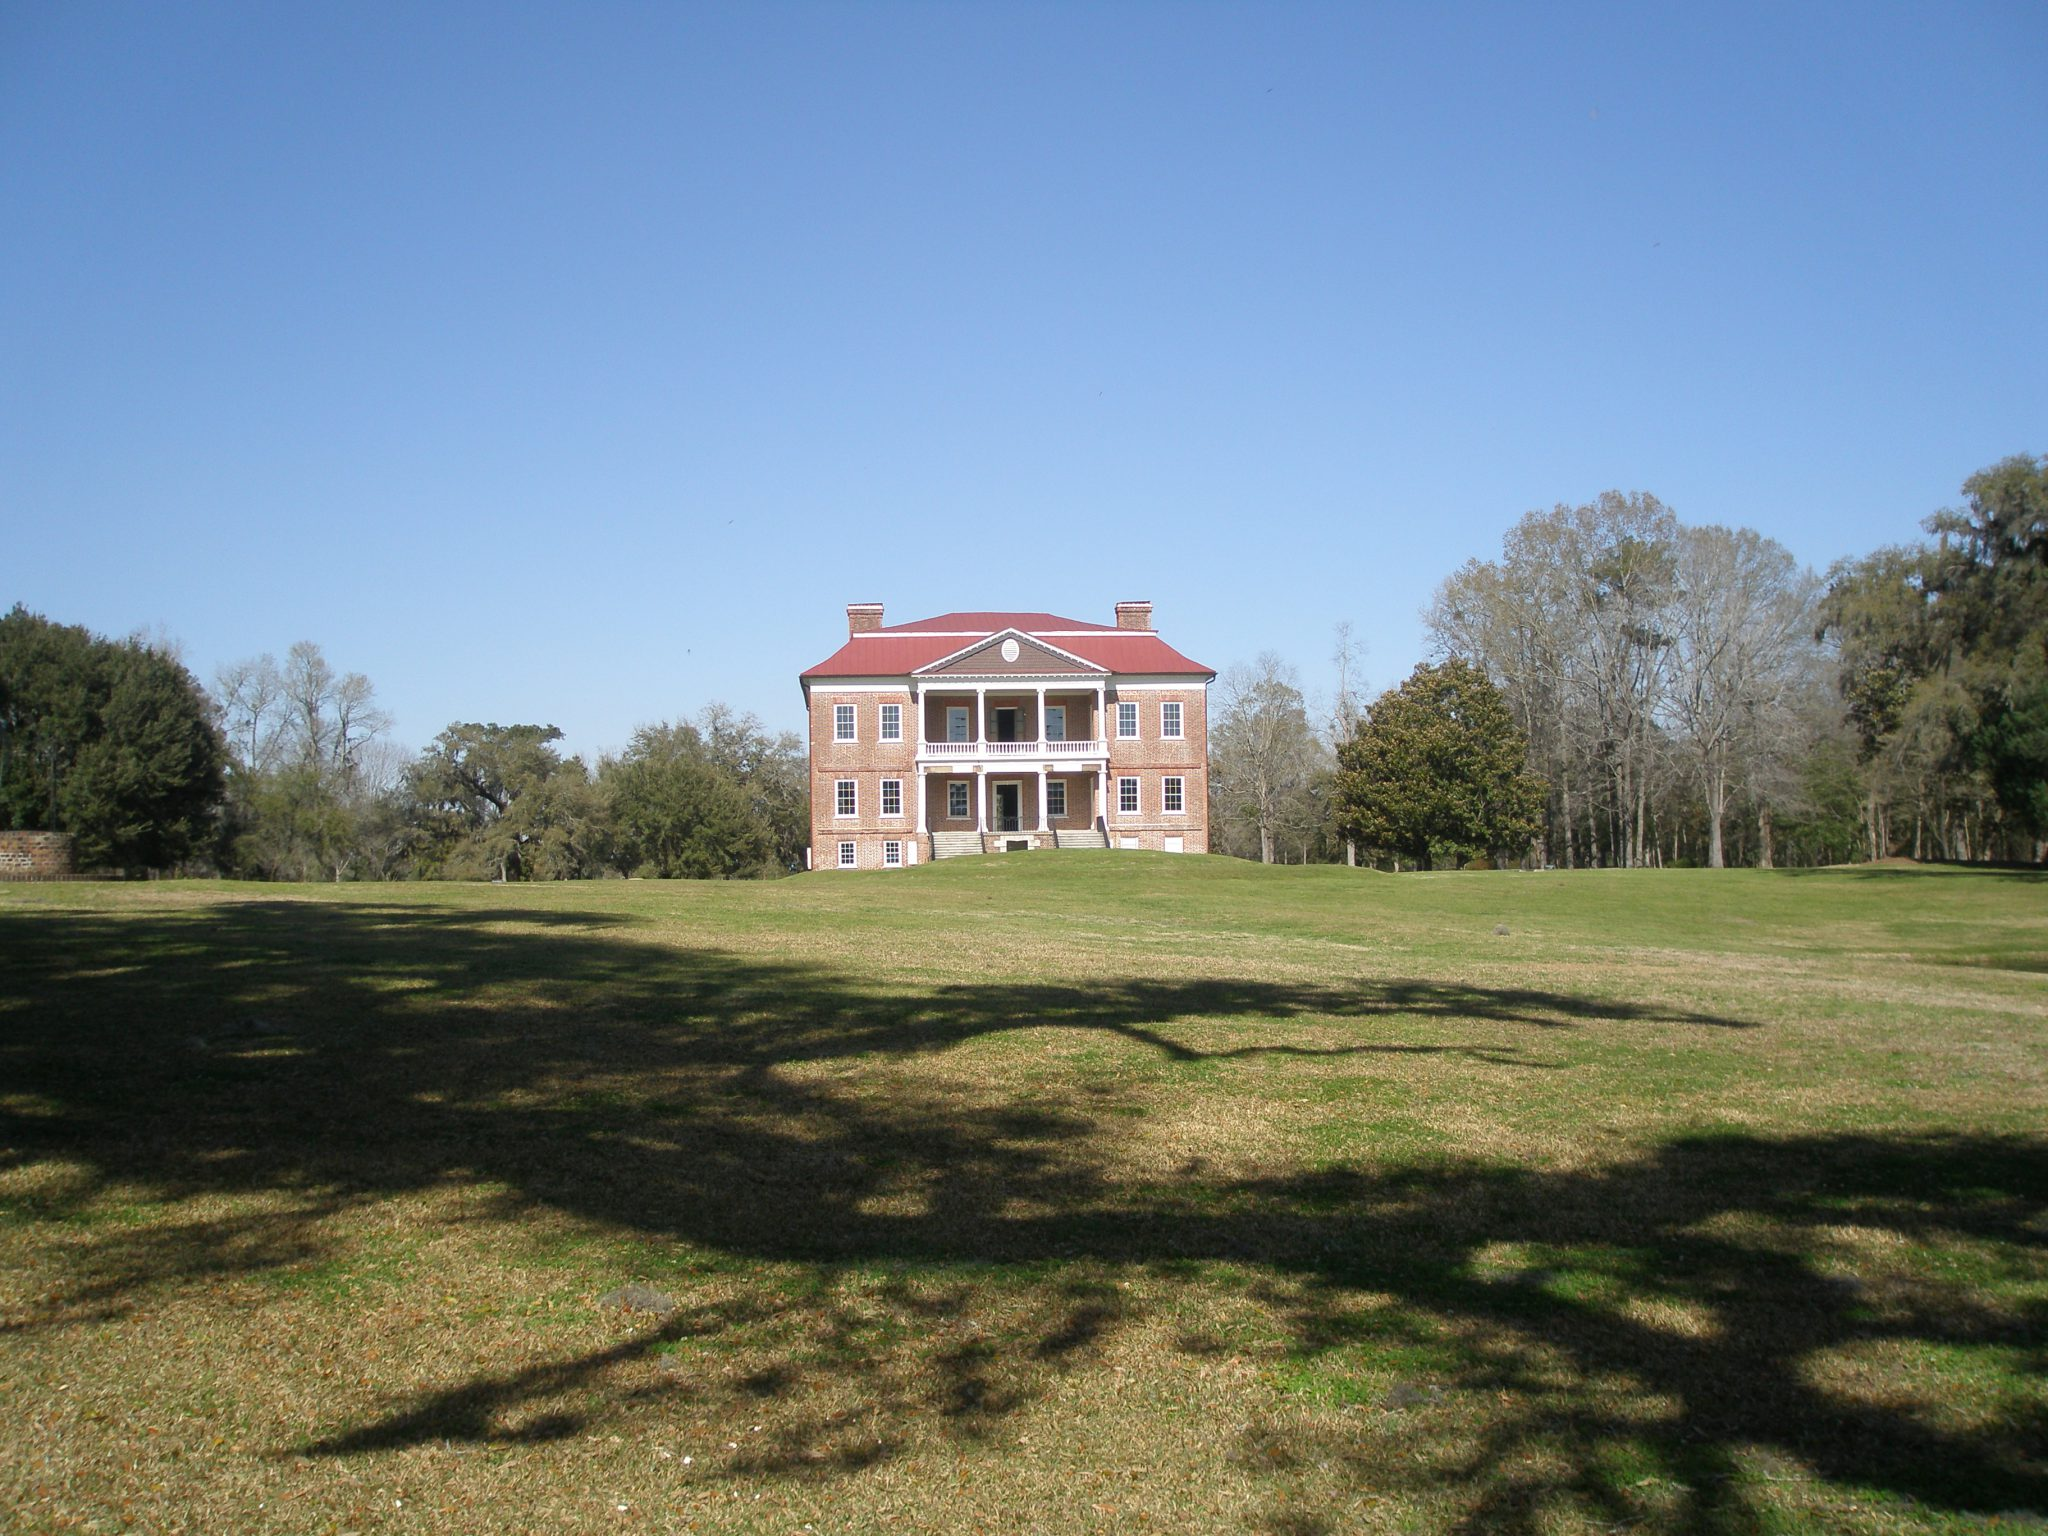 Our parting view of Drayton Hall.